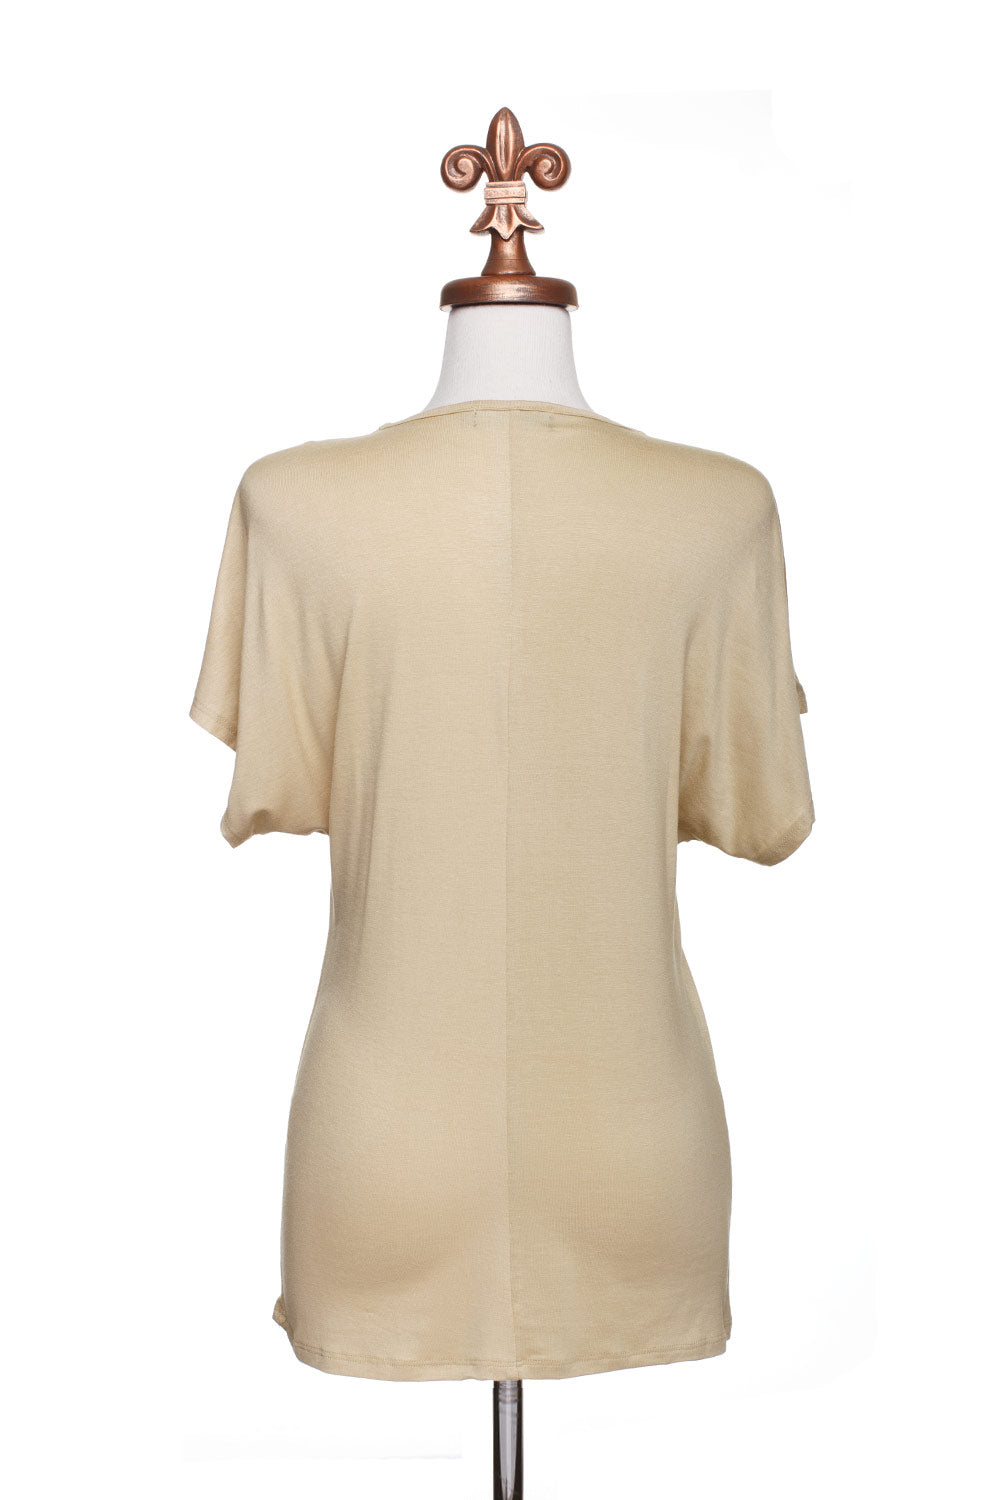 Type 3 Empress Top in Tan